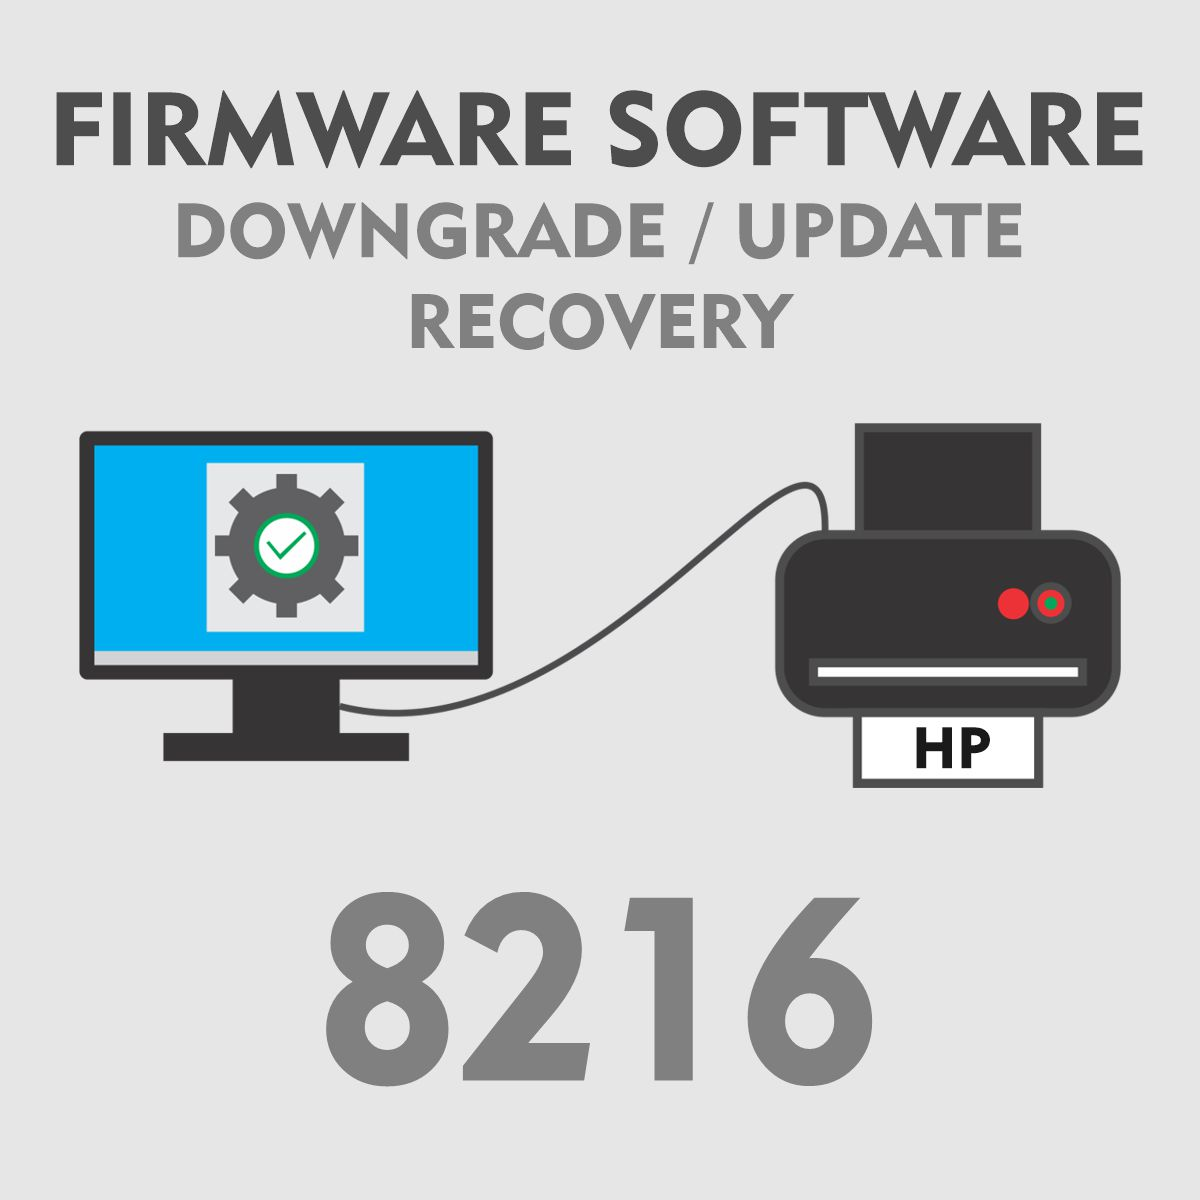 HP 8216 | Software Firmware para Downgrade Update Recovery